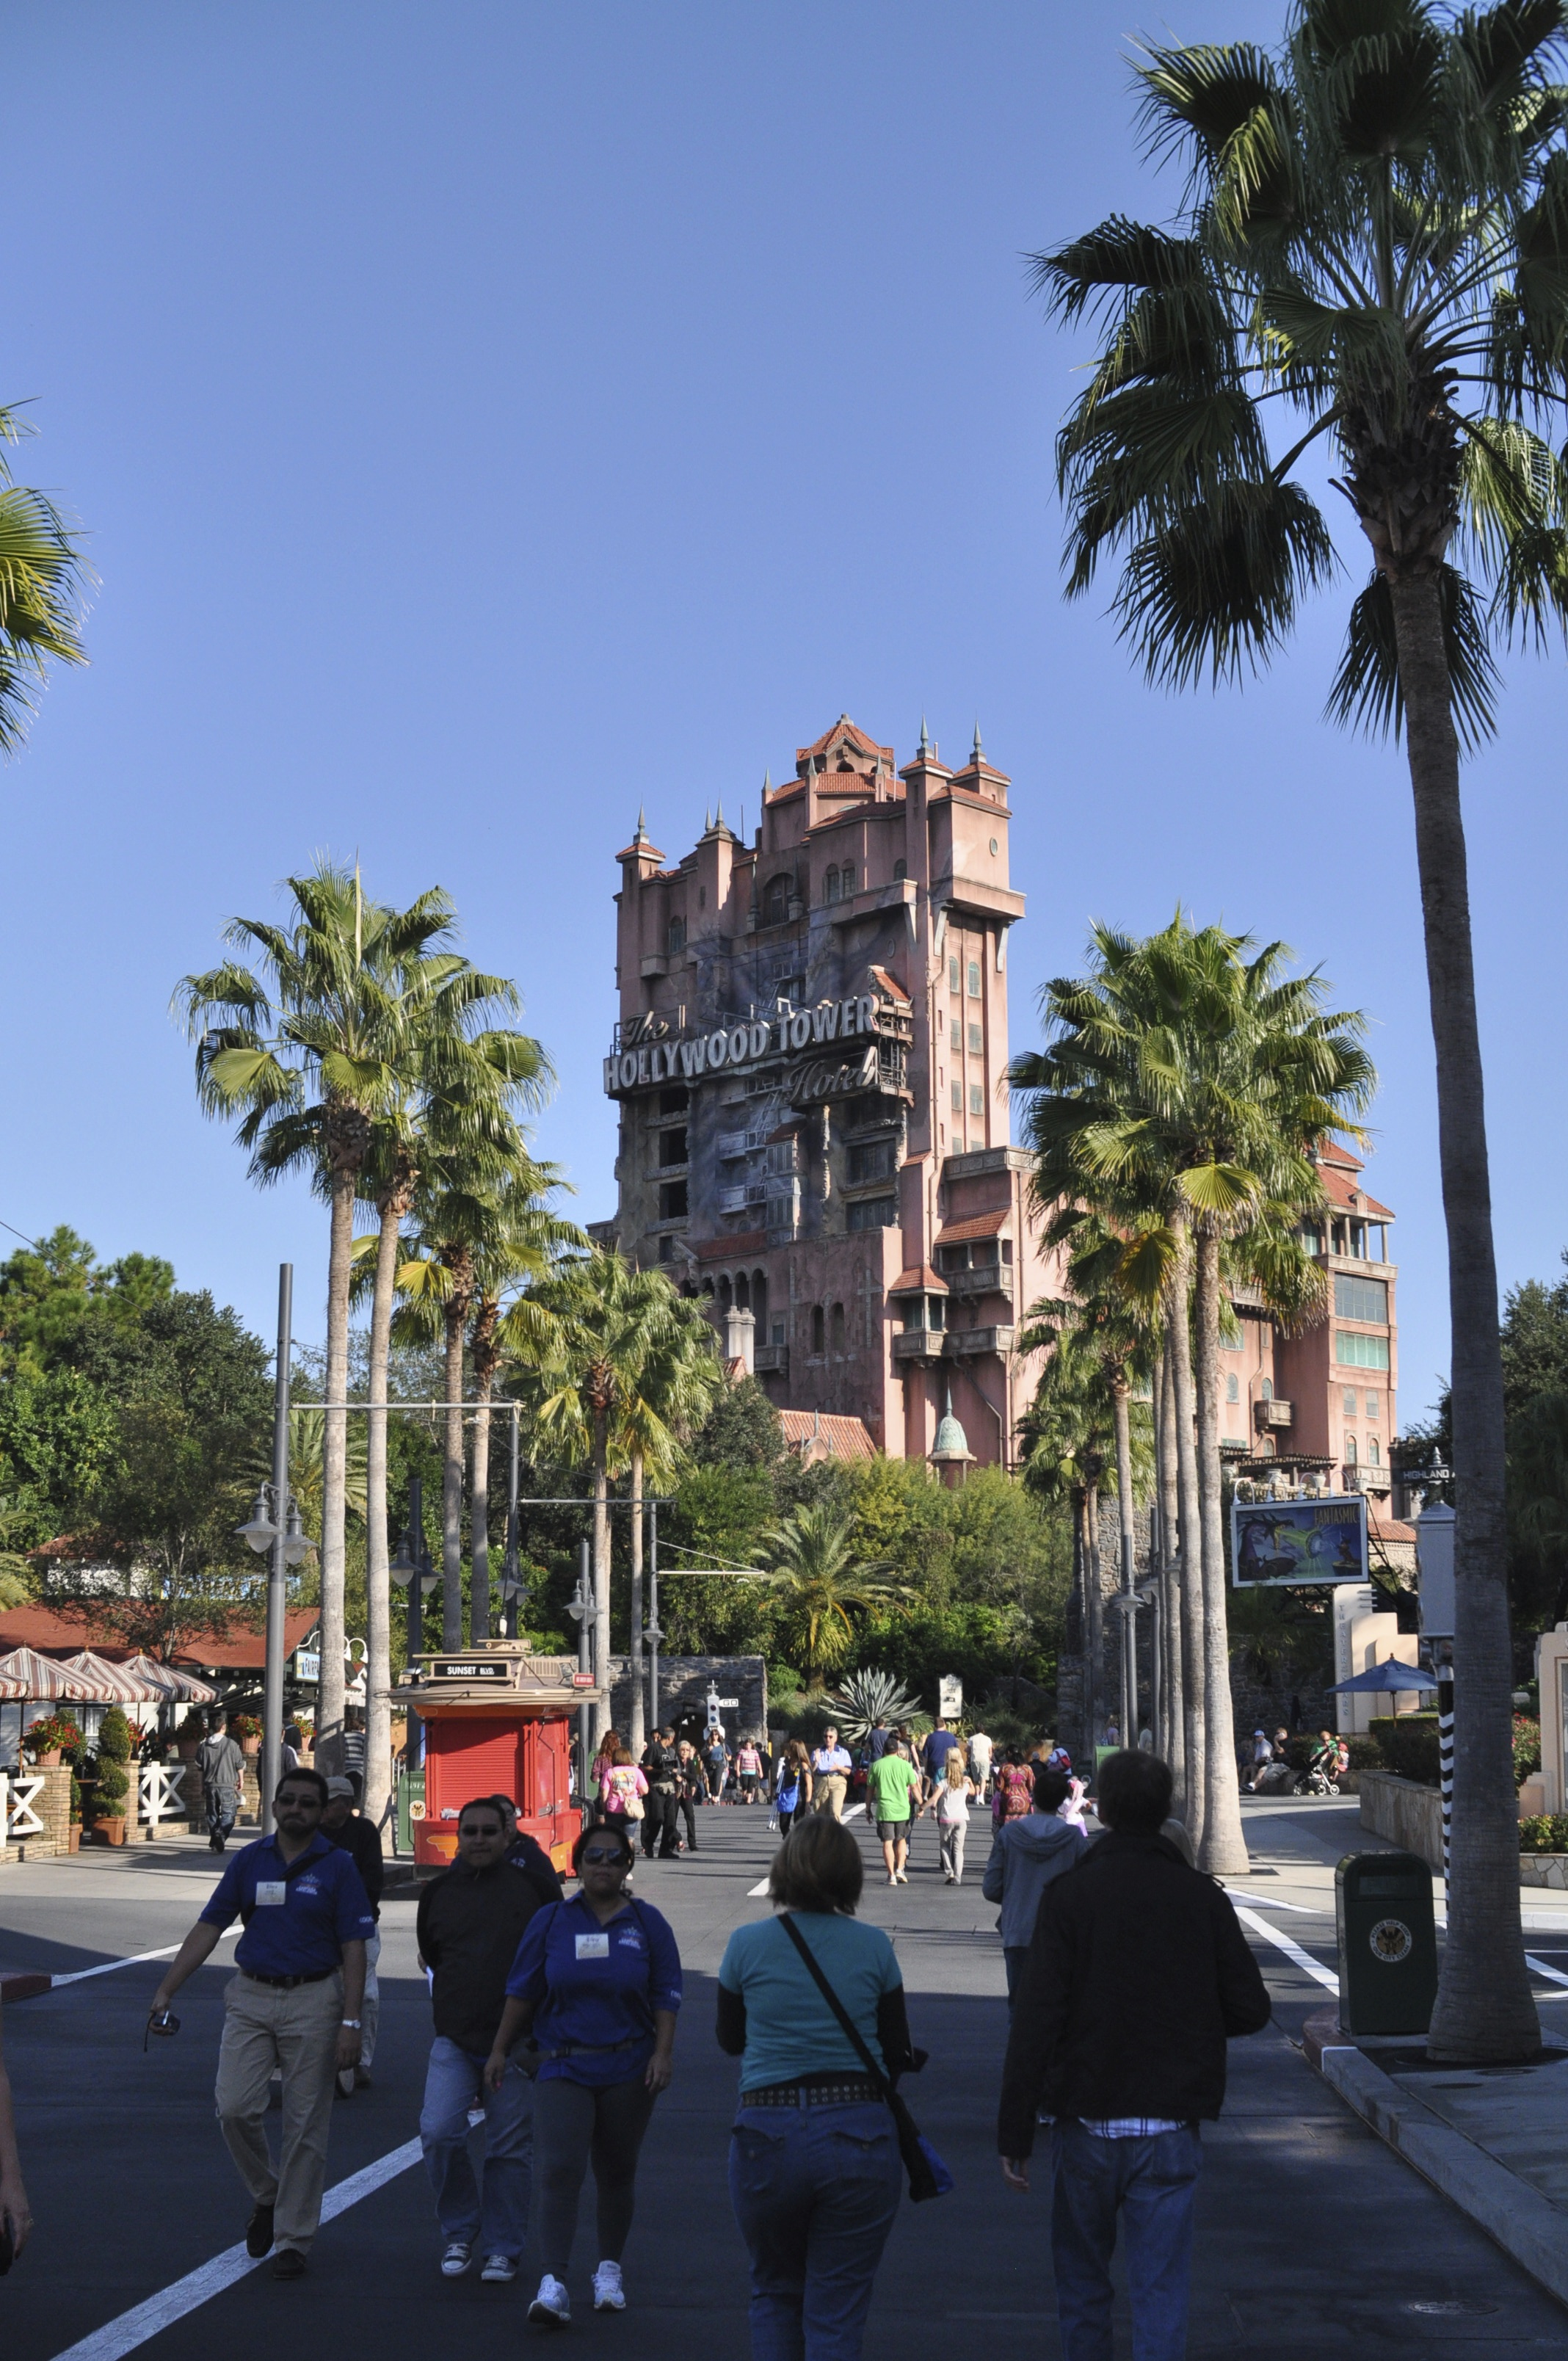 Today was the day I was to finally ride the original Tower of Terror.  I was SUPER excited! Disney's Hollywood Studios is a smaller park that's more focused on shows […]